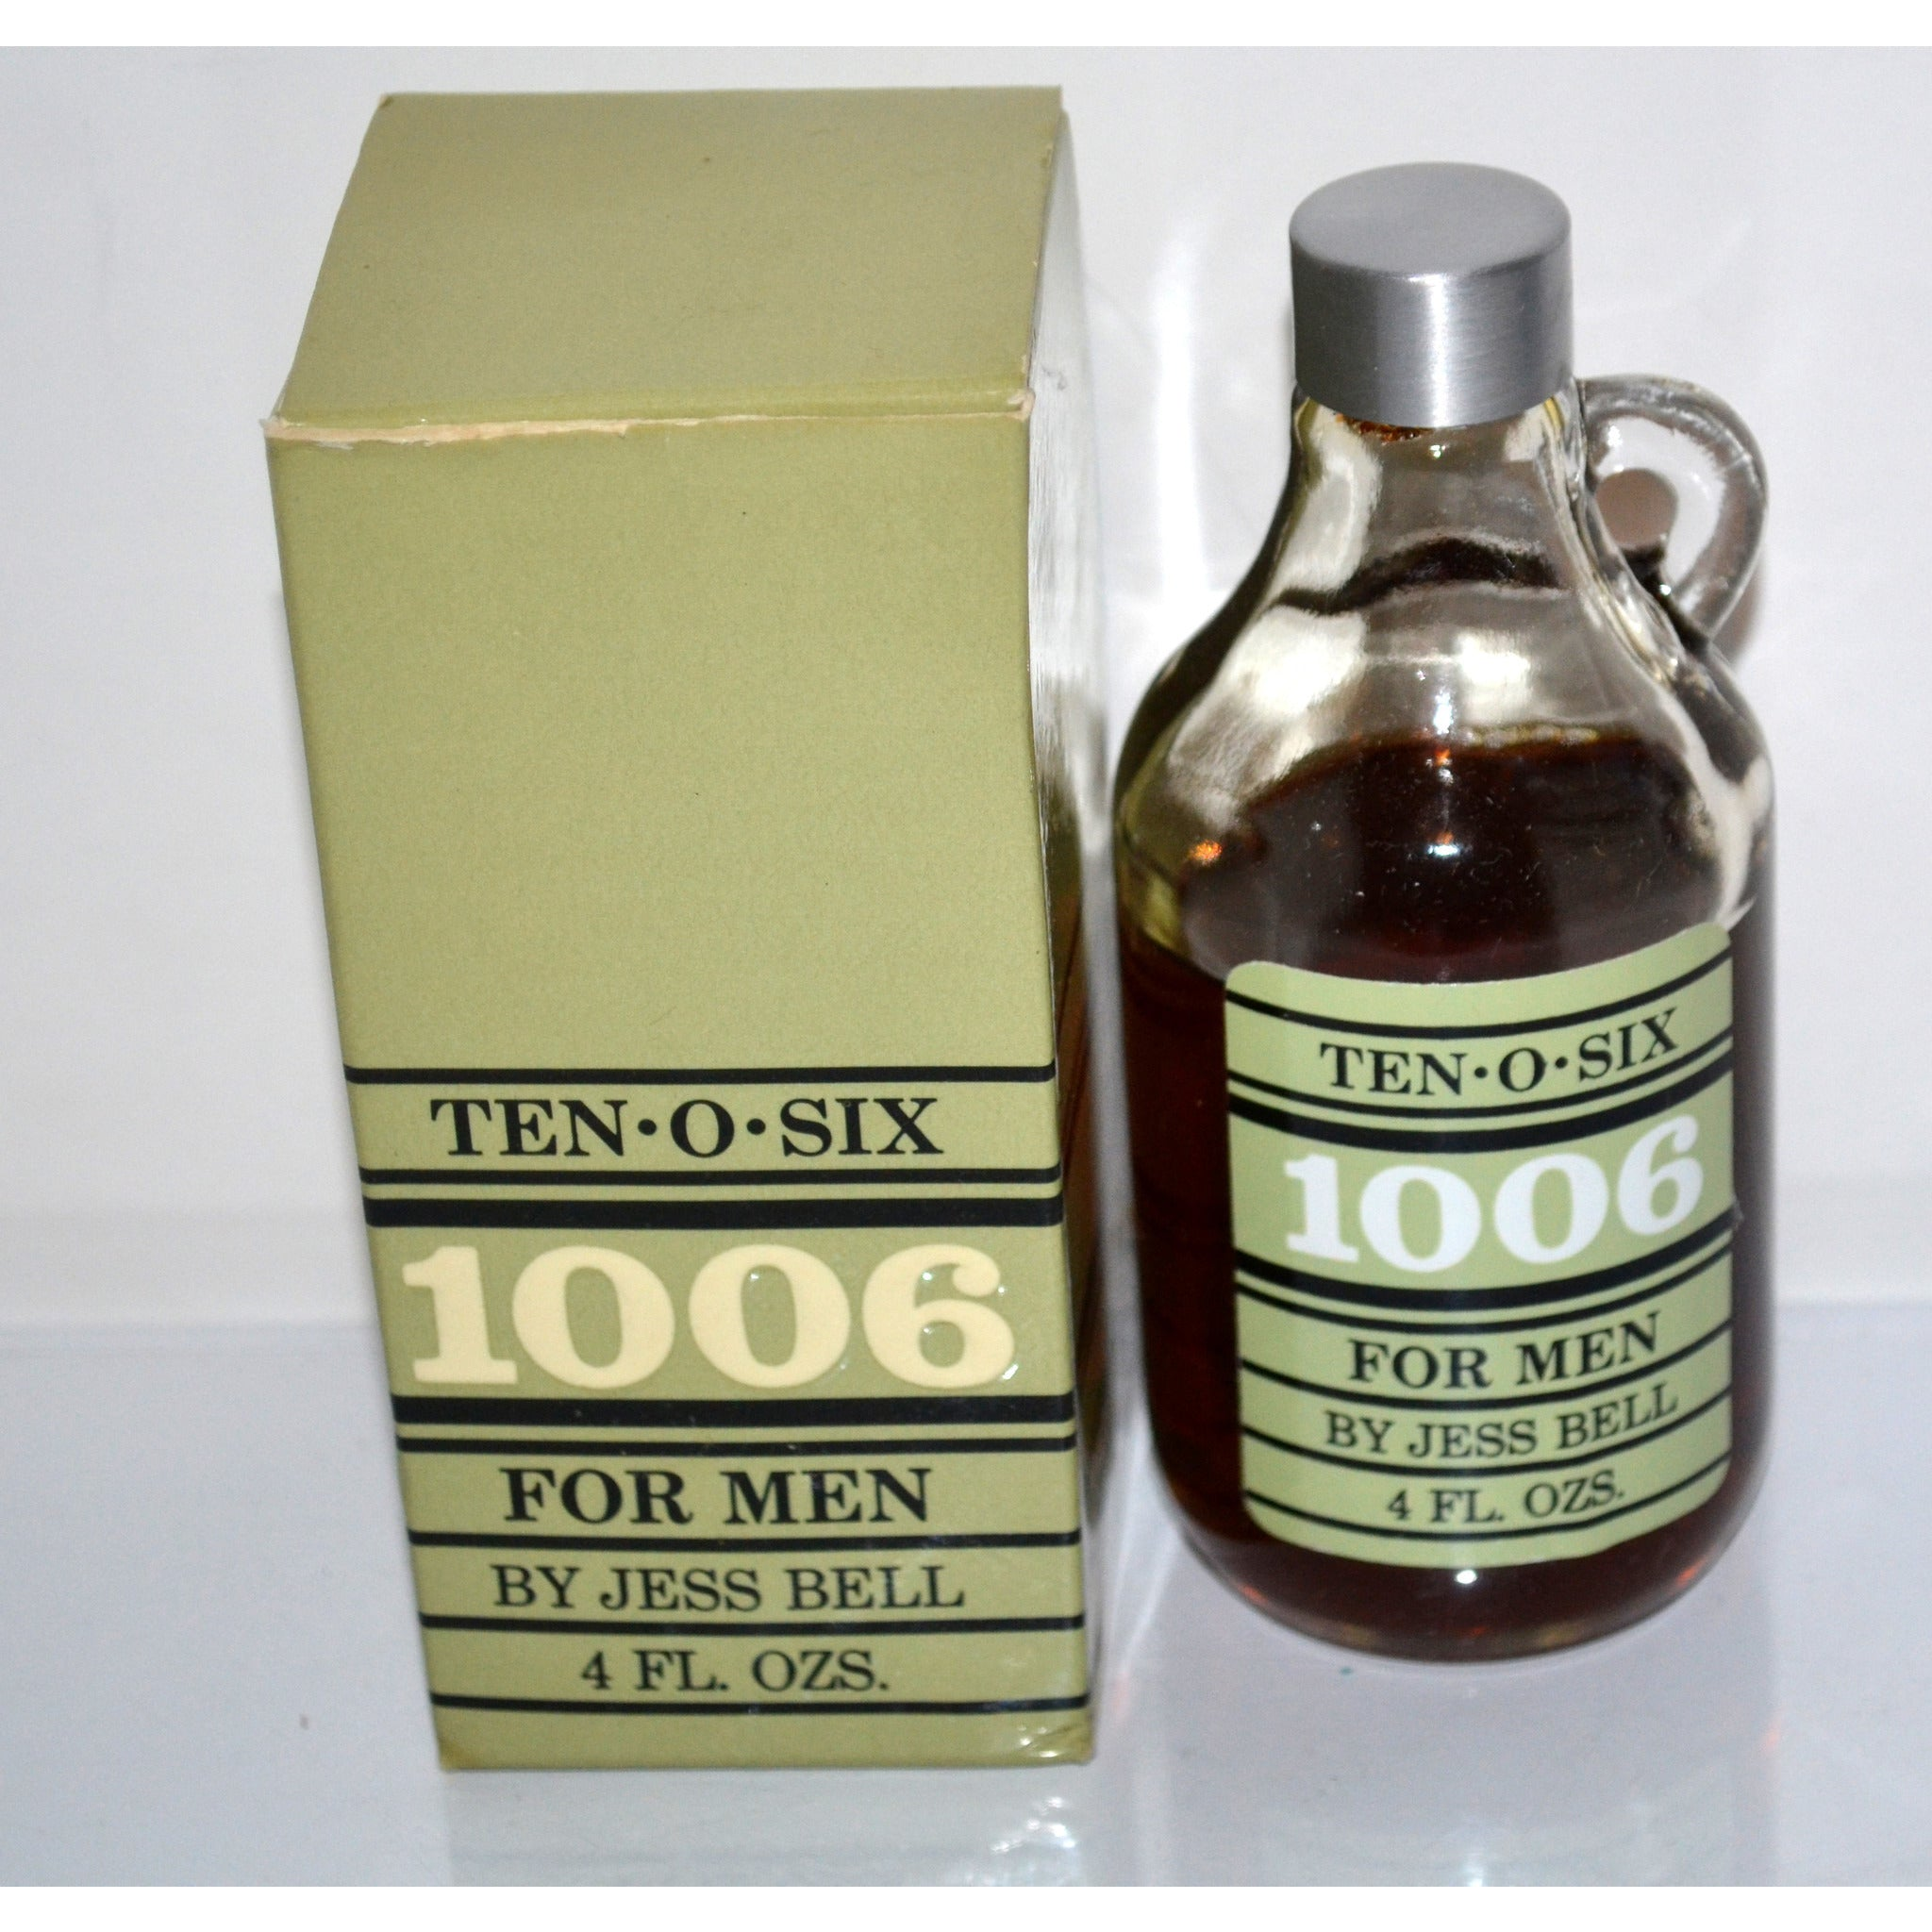 Vintage Ten-O-Six 1006 Cologne By Jess Bell